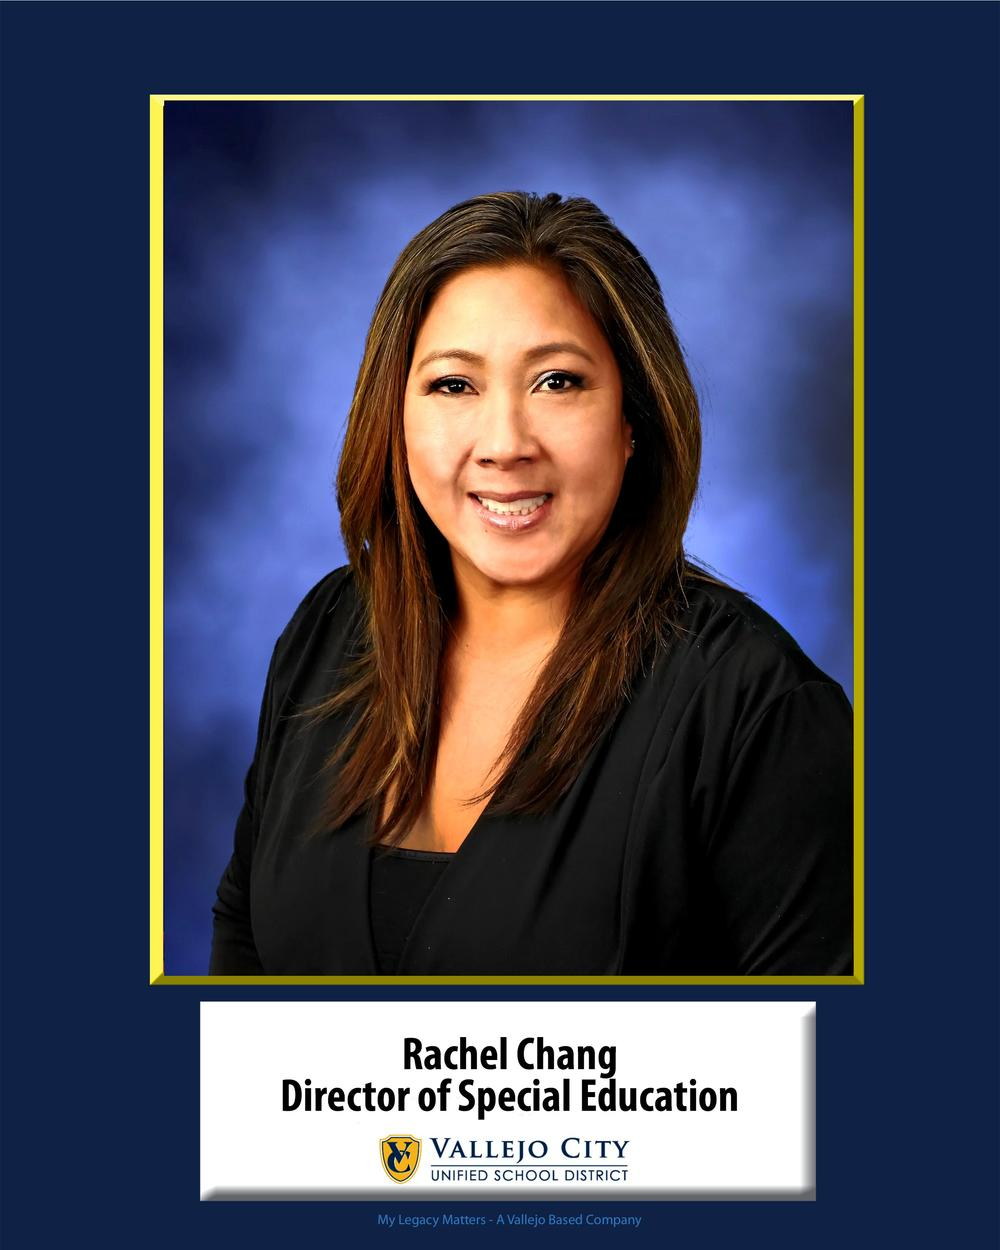 Rachel Chang, Director of Special Education